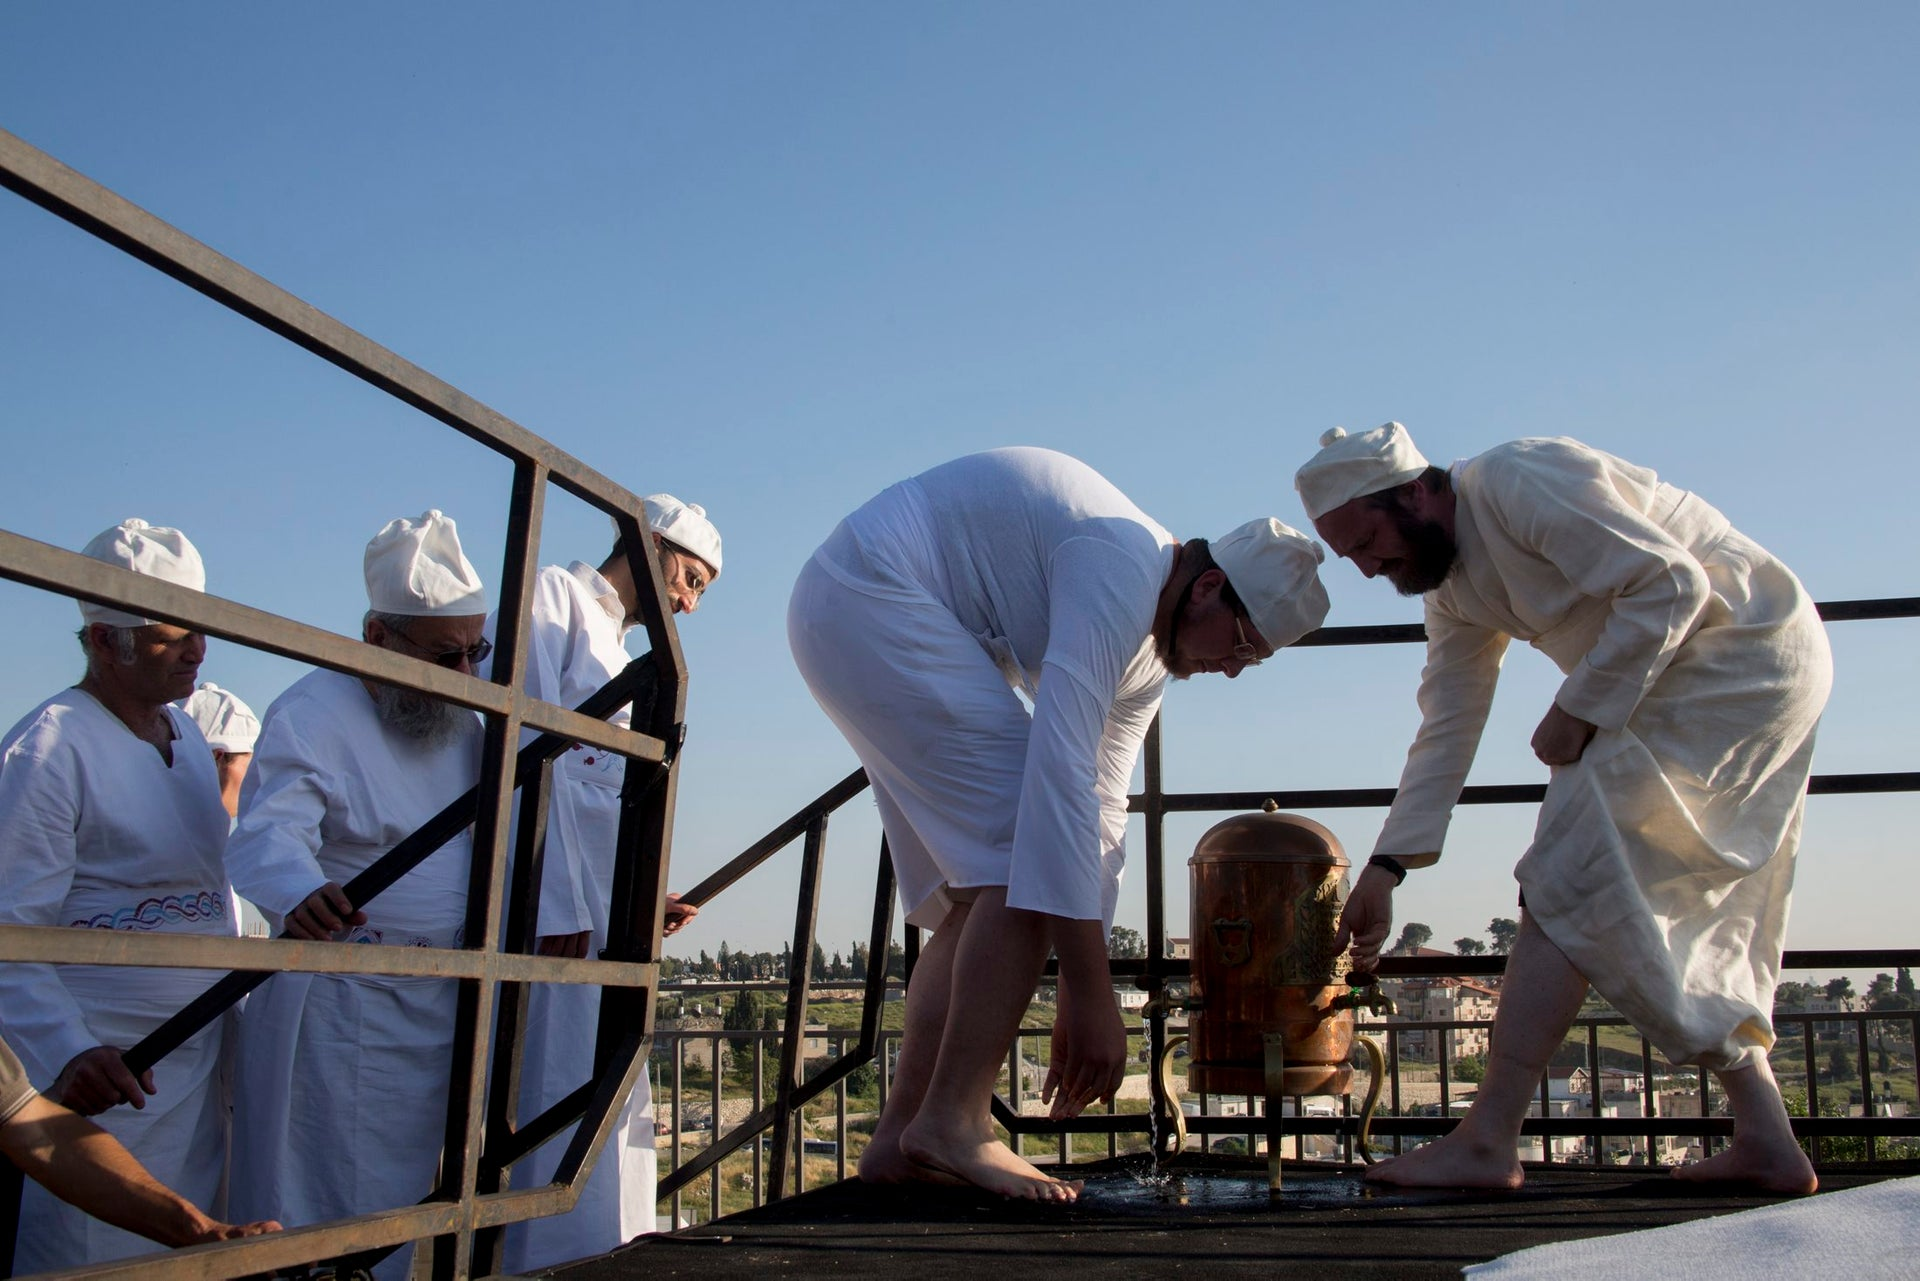 Priests at a Passover sacrifice ritual in Jerusalem.